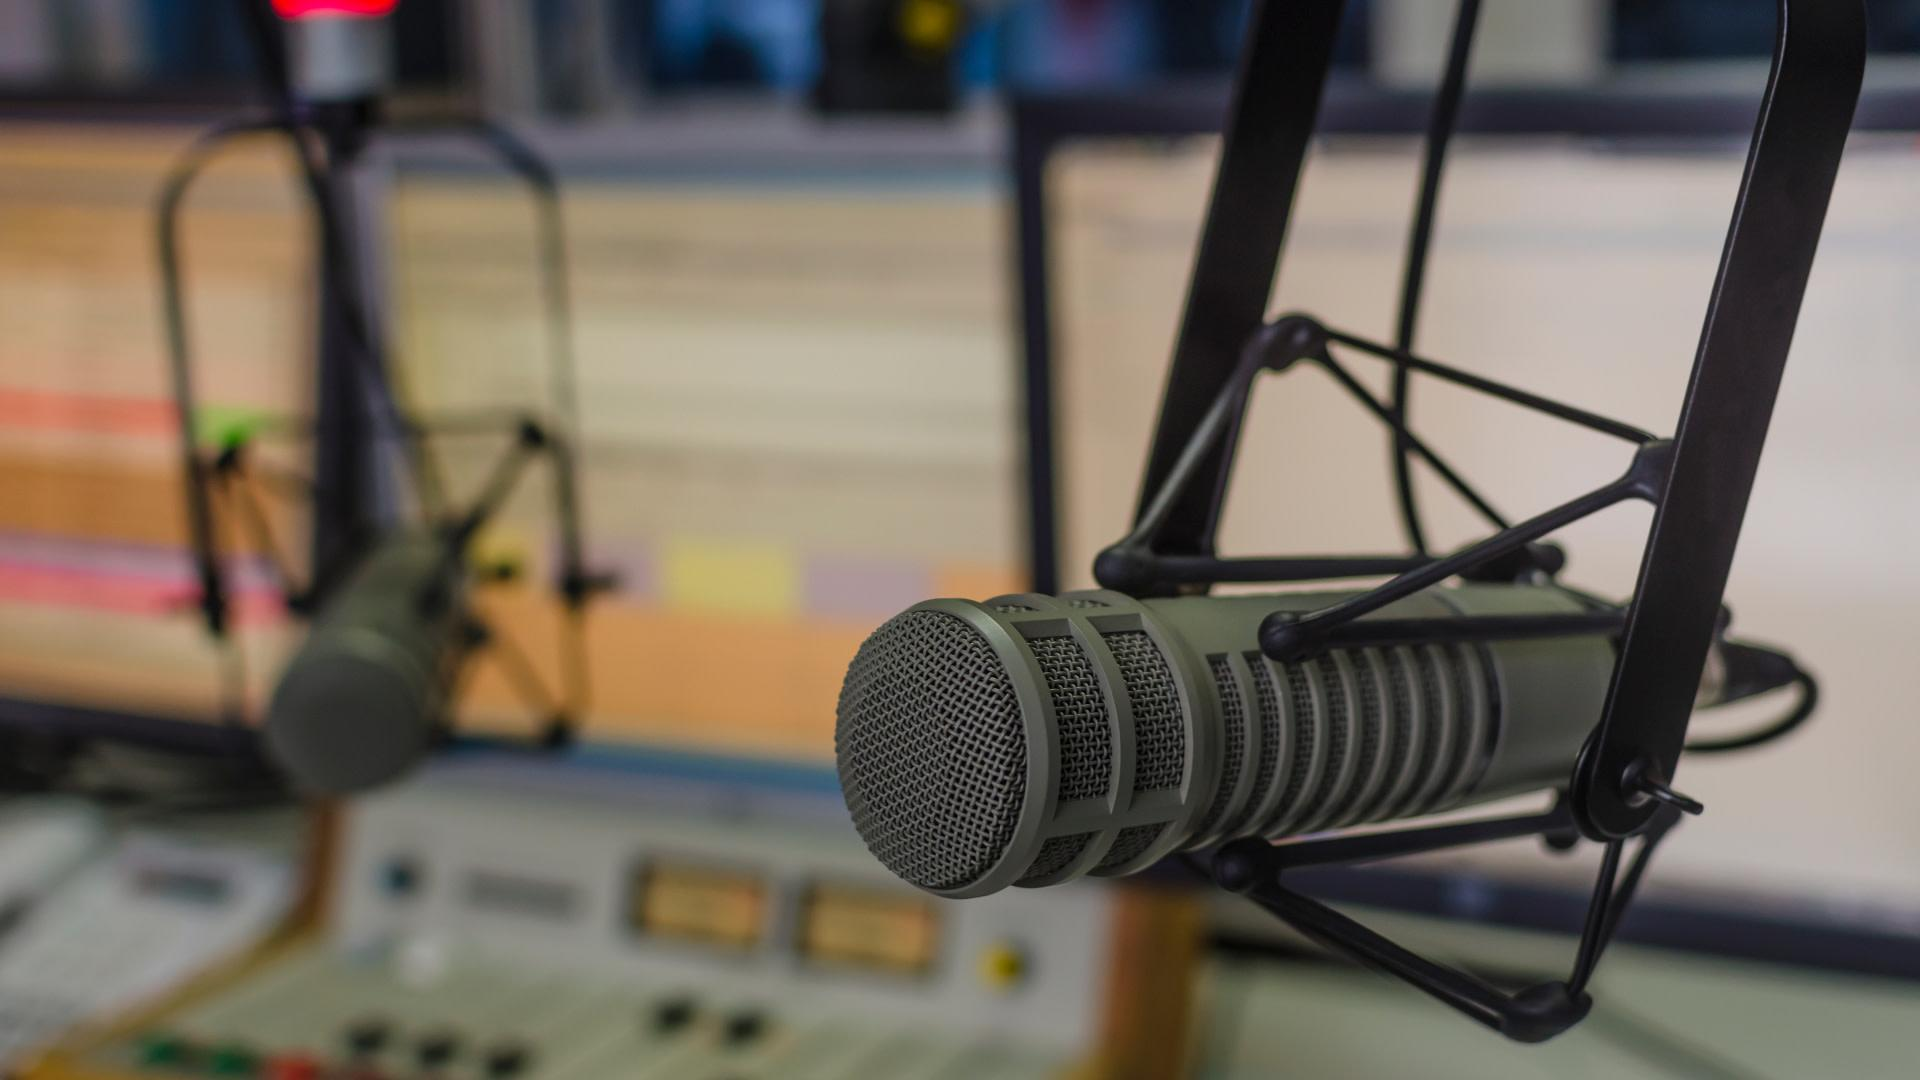 , Radio Host Fired and 2 Co-Hosts Suspended Following Racist On-Air Exchange, The Politicus